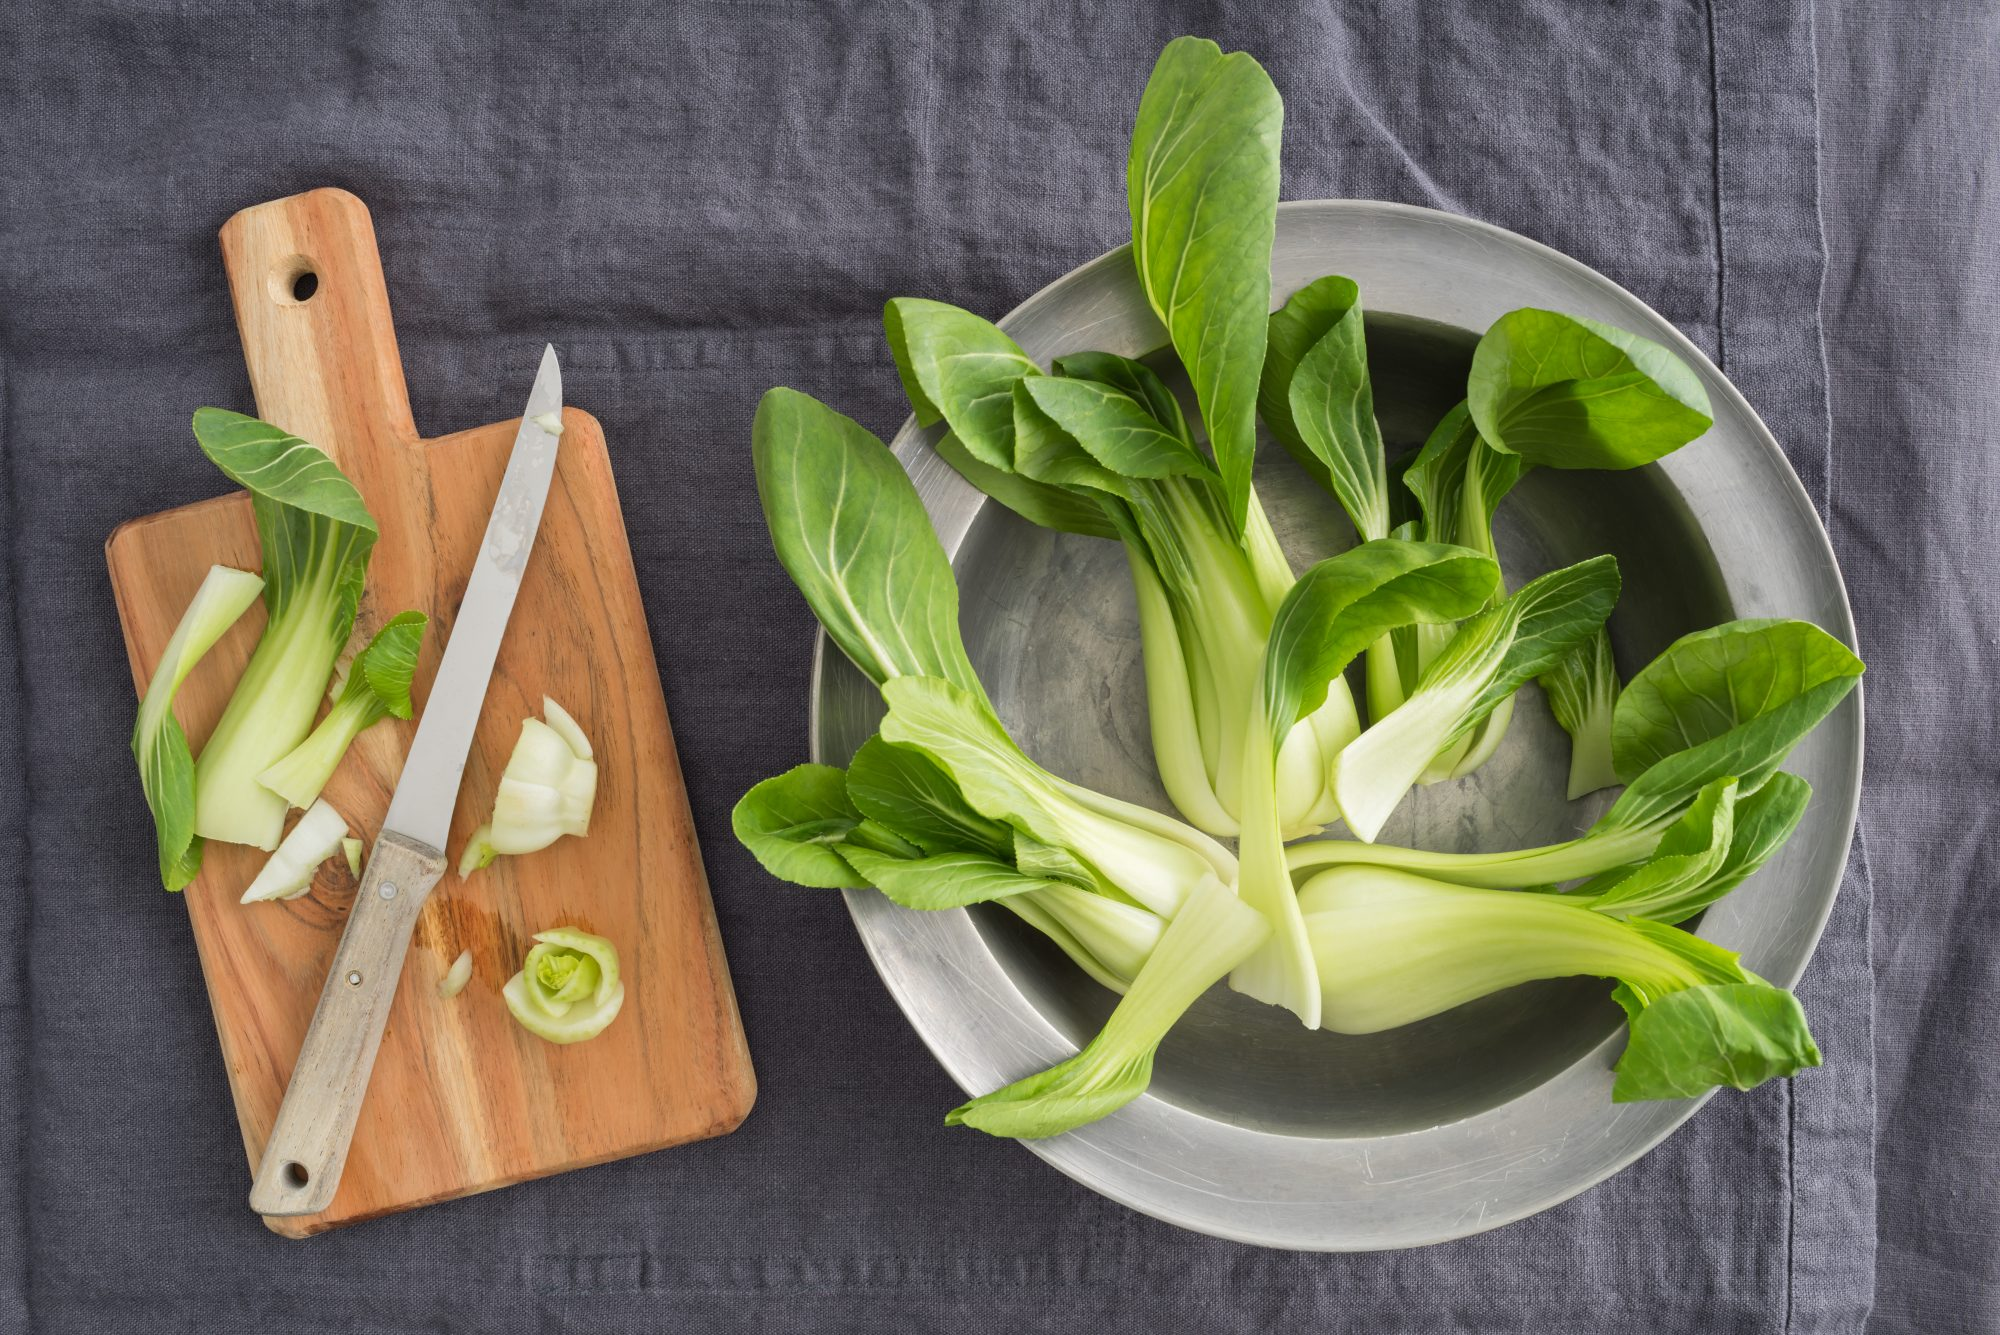 Cutting Bok Choy 12/20/19